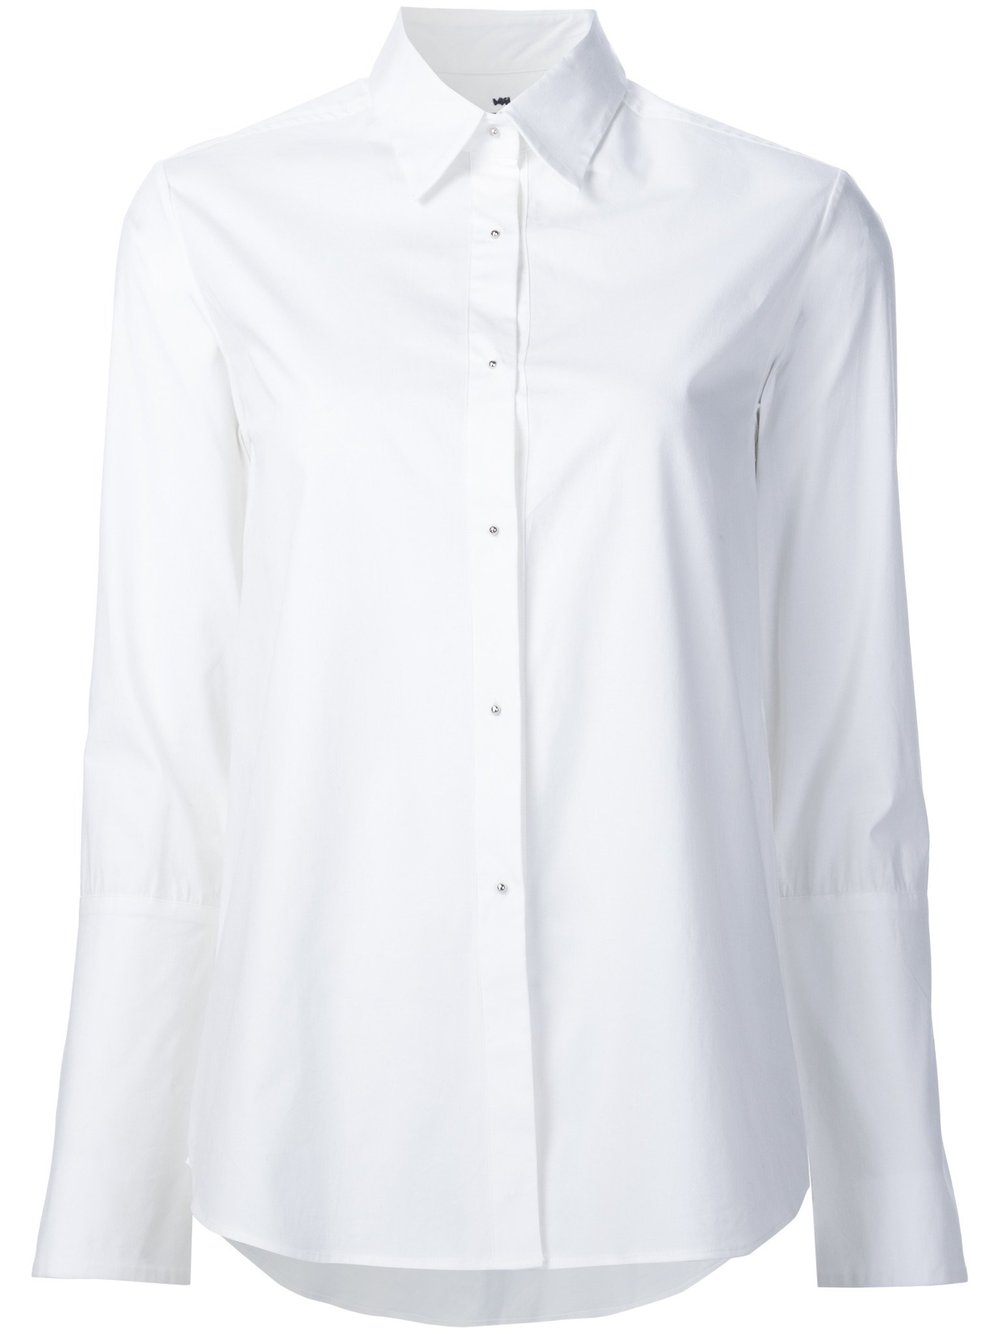 4. the white shirt - A classic, verstatile buy.